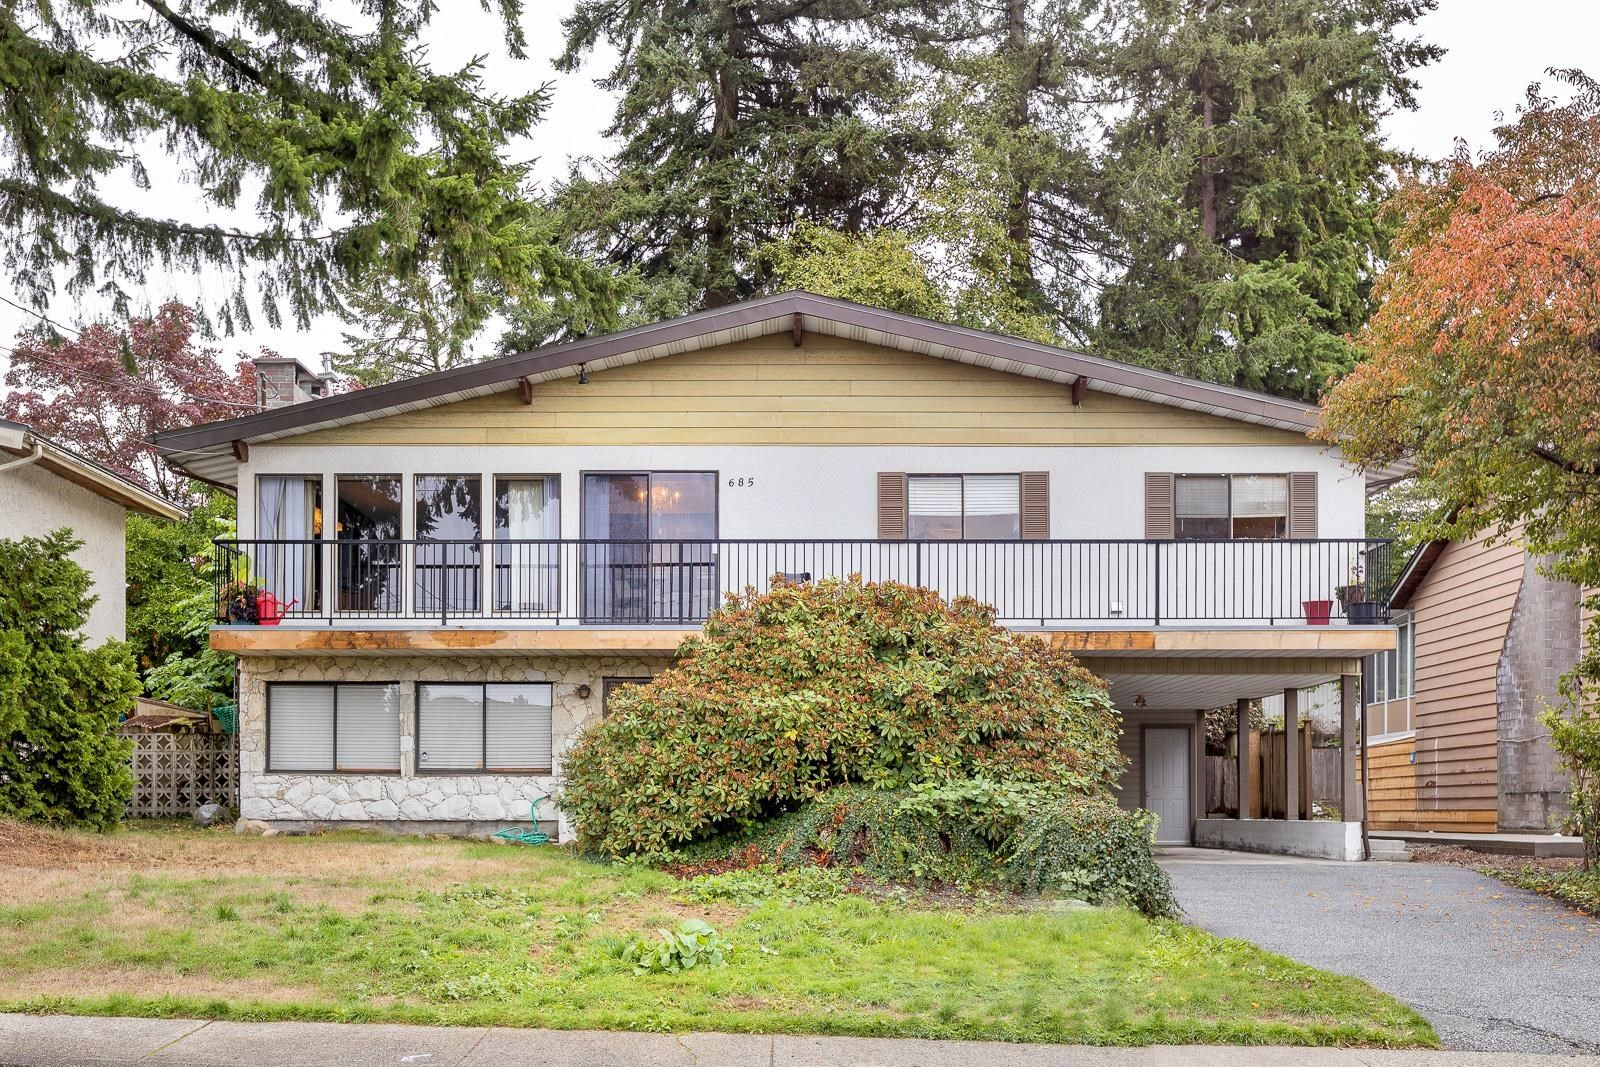 Main Photo: 685 MACINTOSH Street in Coquitlam: Central Coquitlam House for sale : MLS®# R2623113